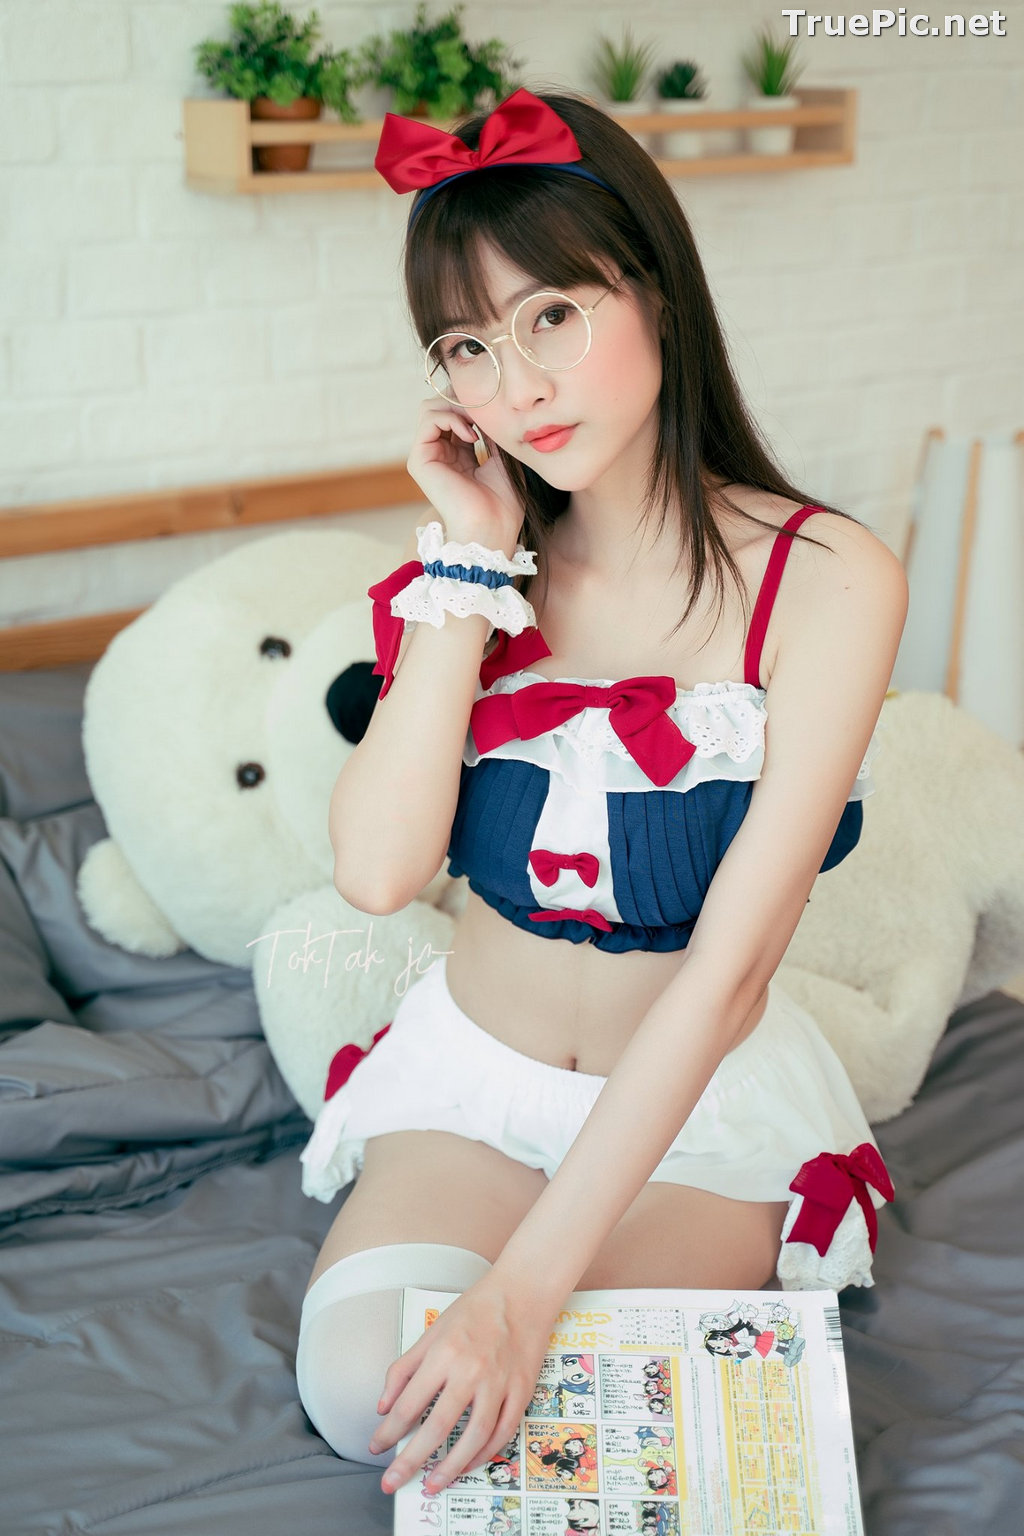 Image Thailand Model - Waralee Teerapanpong - Sailor Moon Lingerie - TruePic.net - Picture-7